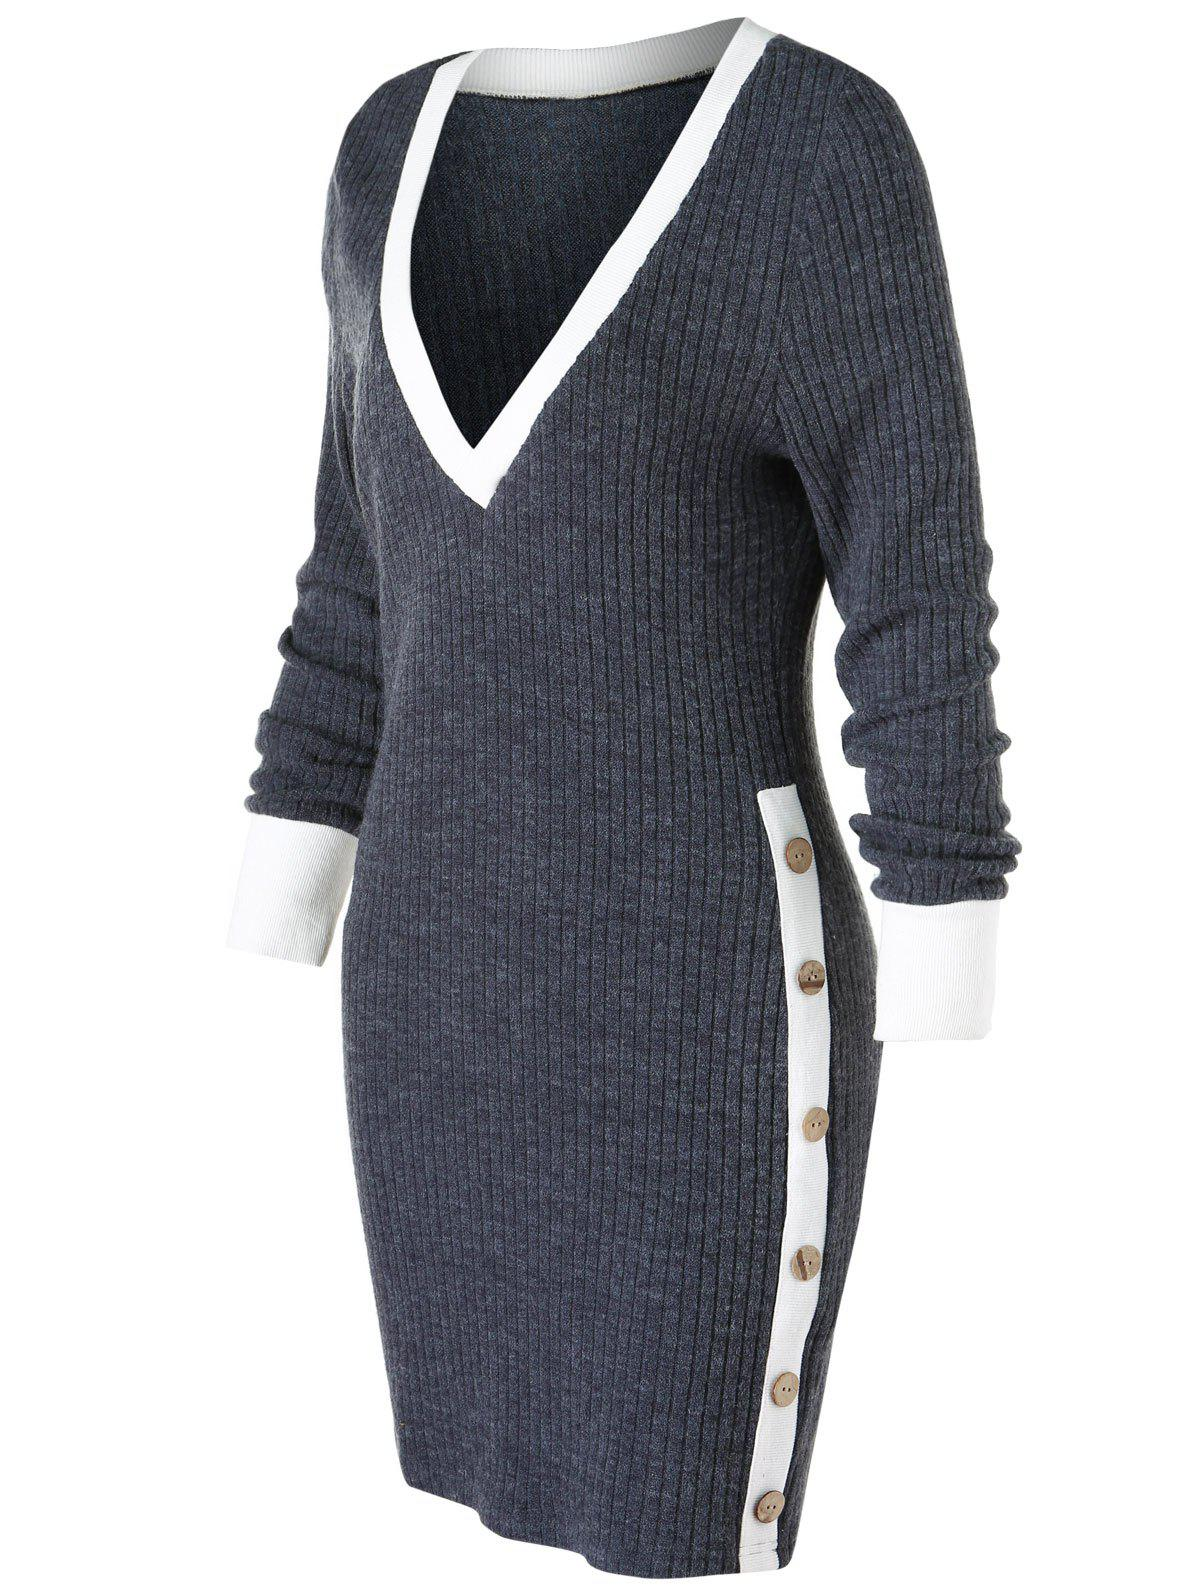 Discount Low Cut Contrast Trim Knit Bodycon Dress